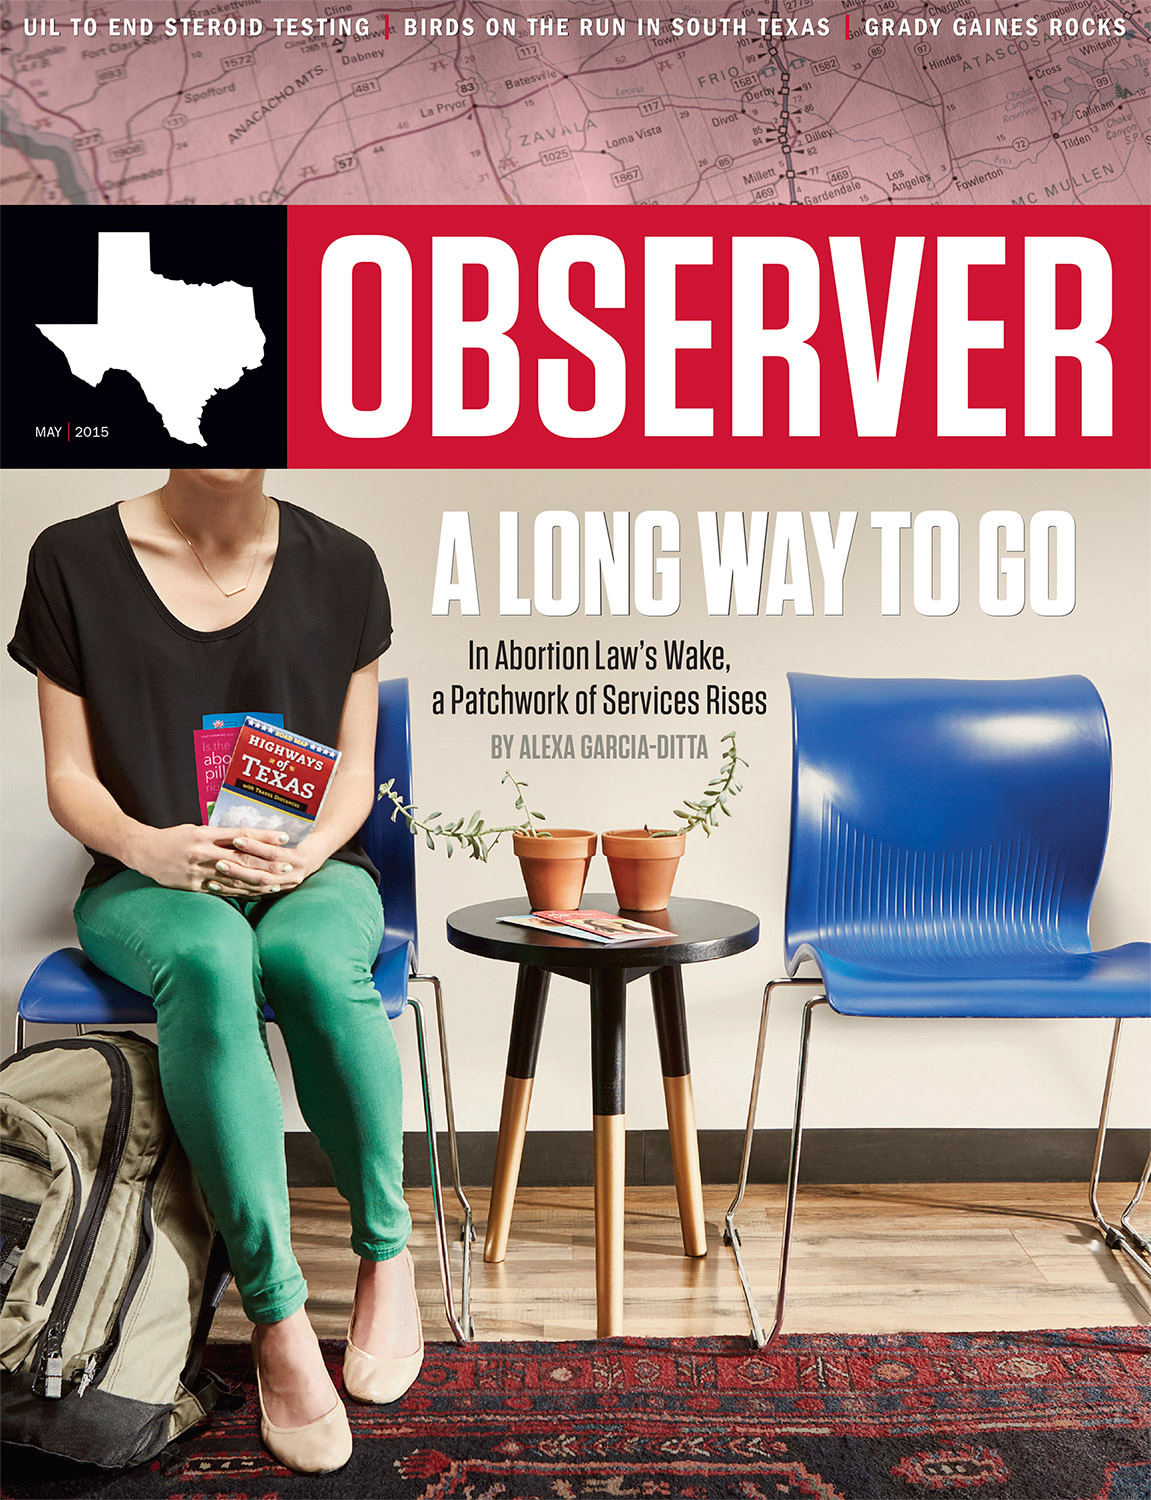 COVER // THE TEXAS OBSERVER // MAY 2015